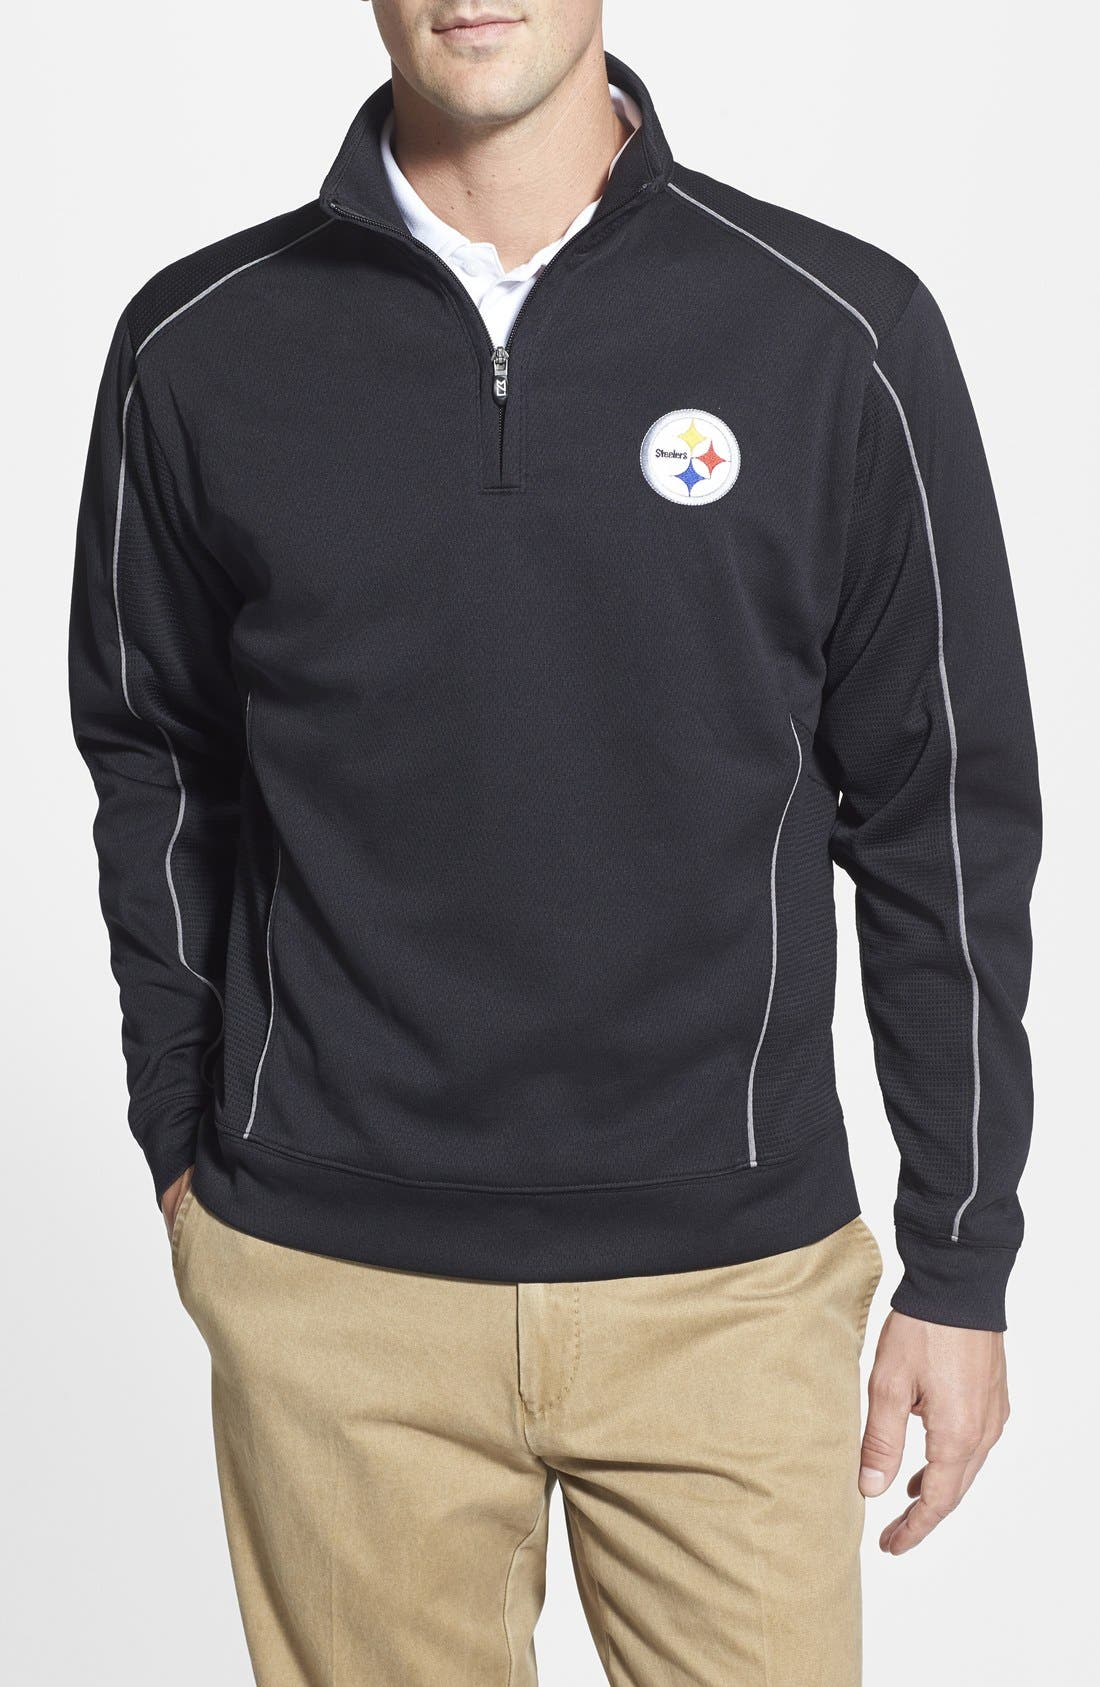 Main Image - Cutter & Buck 'Pittsburgh Steelers - Edge' DryTec Moisture Wicking Half Zip Pullover